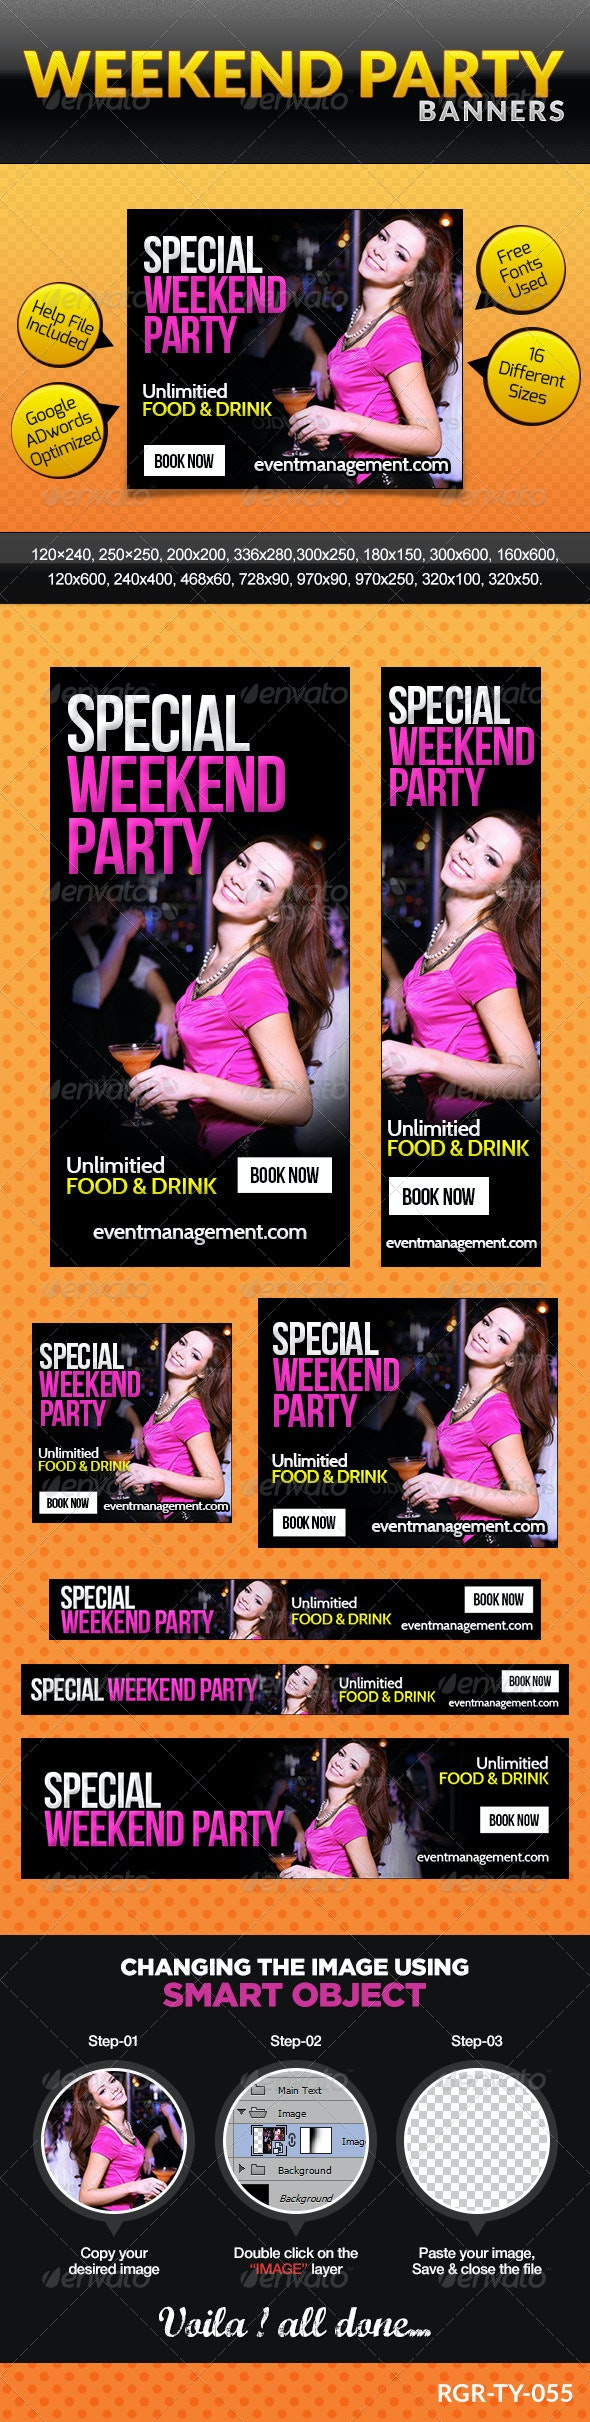 Party & Event Management Banners - Banners & Ads Web Elements